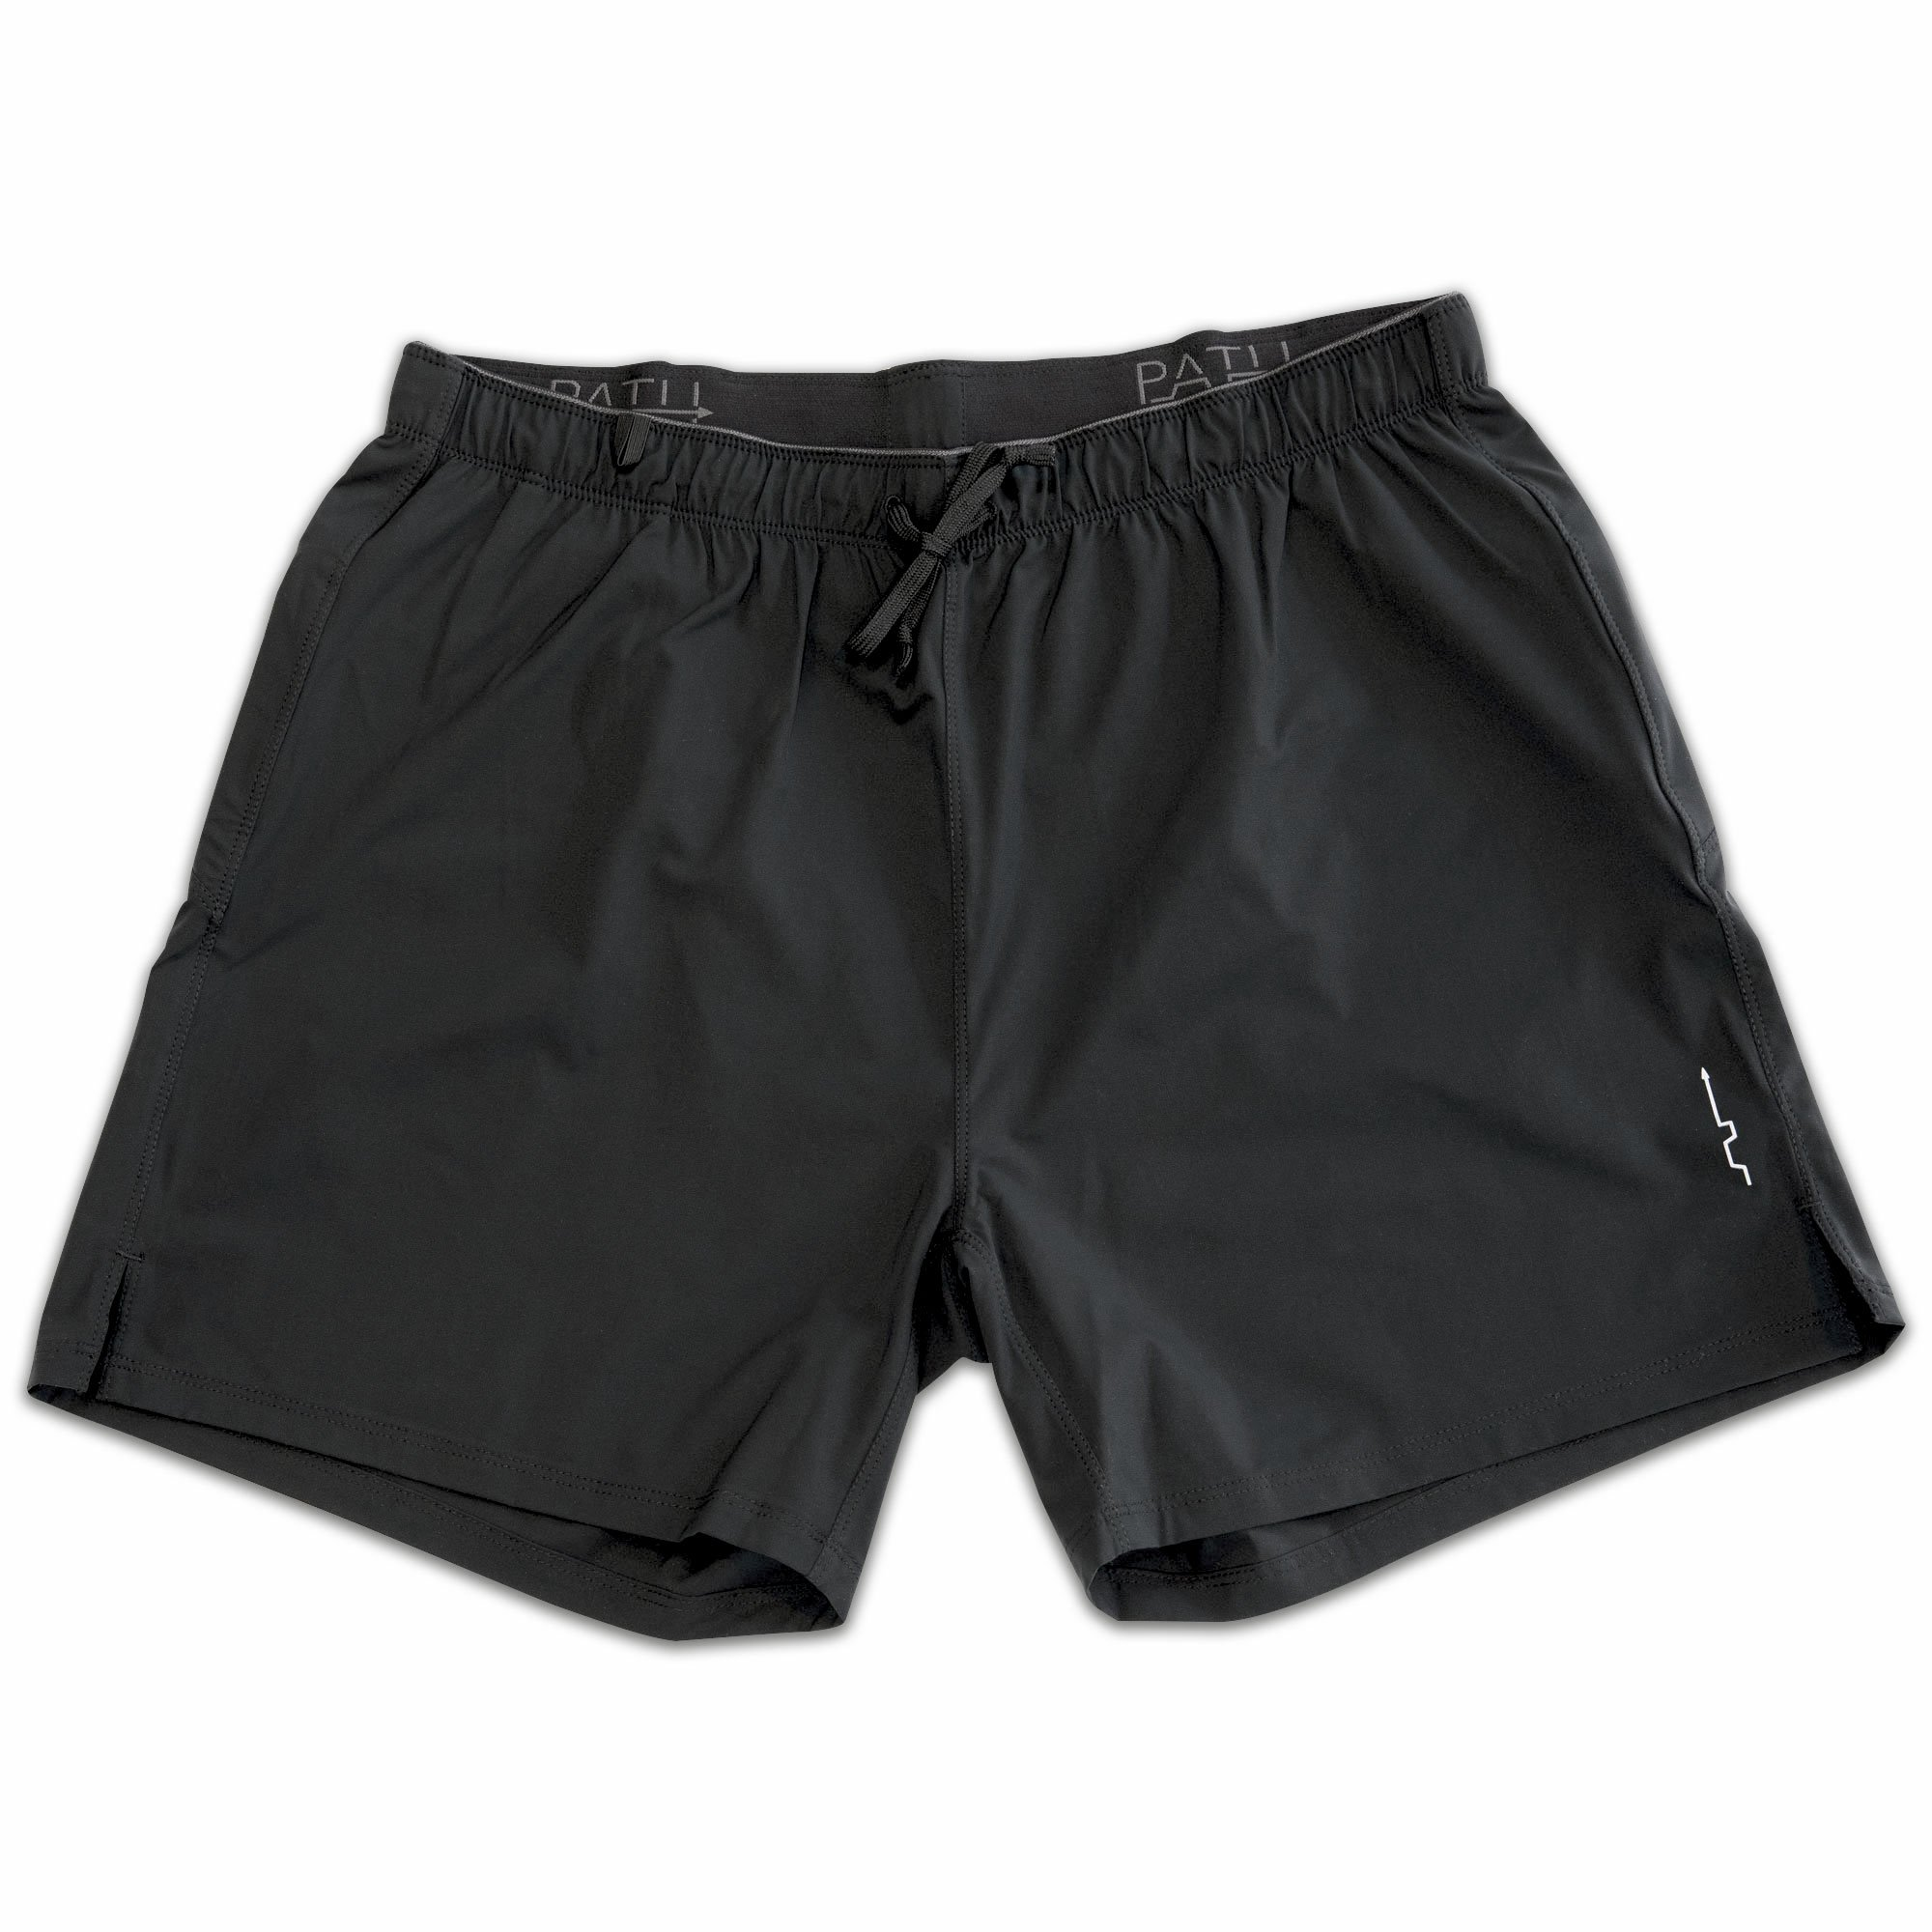 Best Men's Running Shorts of 2019: My Favorite Come From a Little-Known Brand